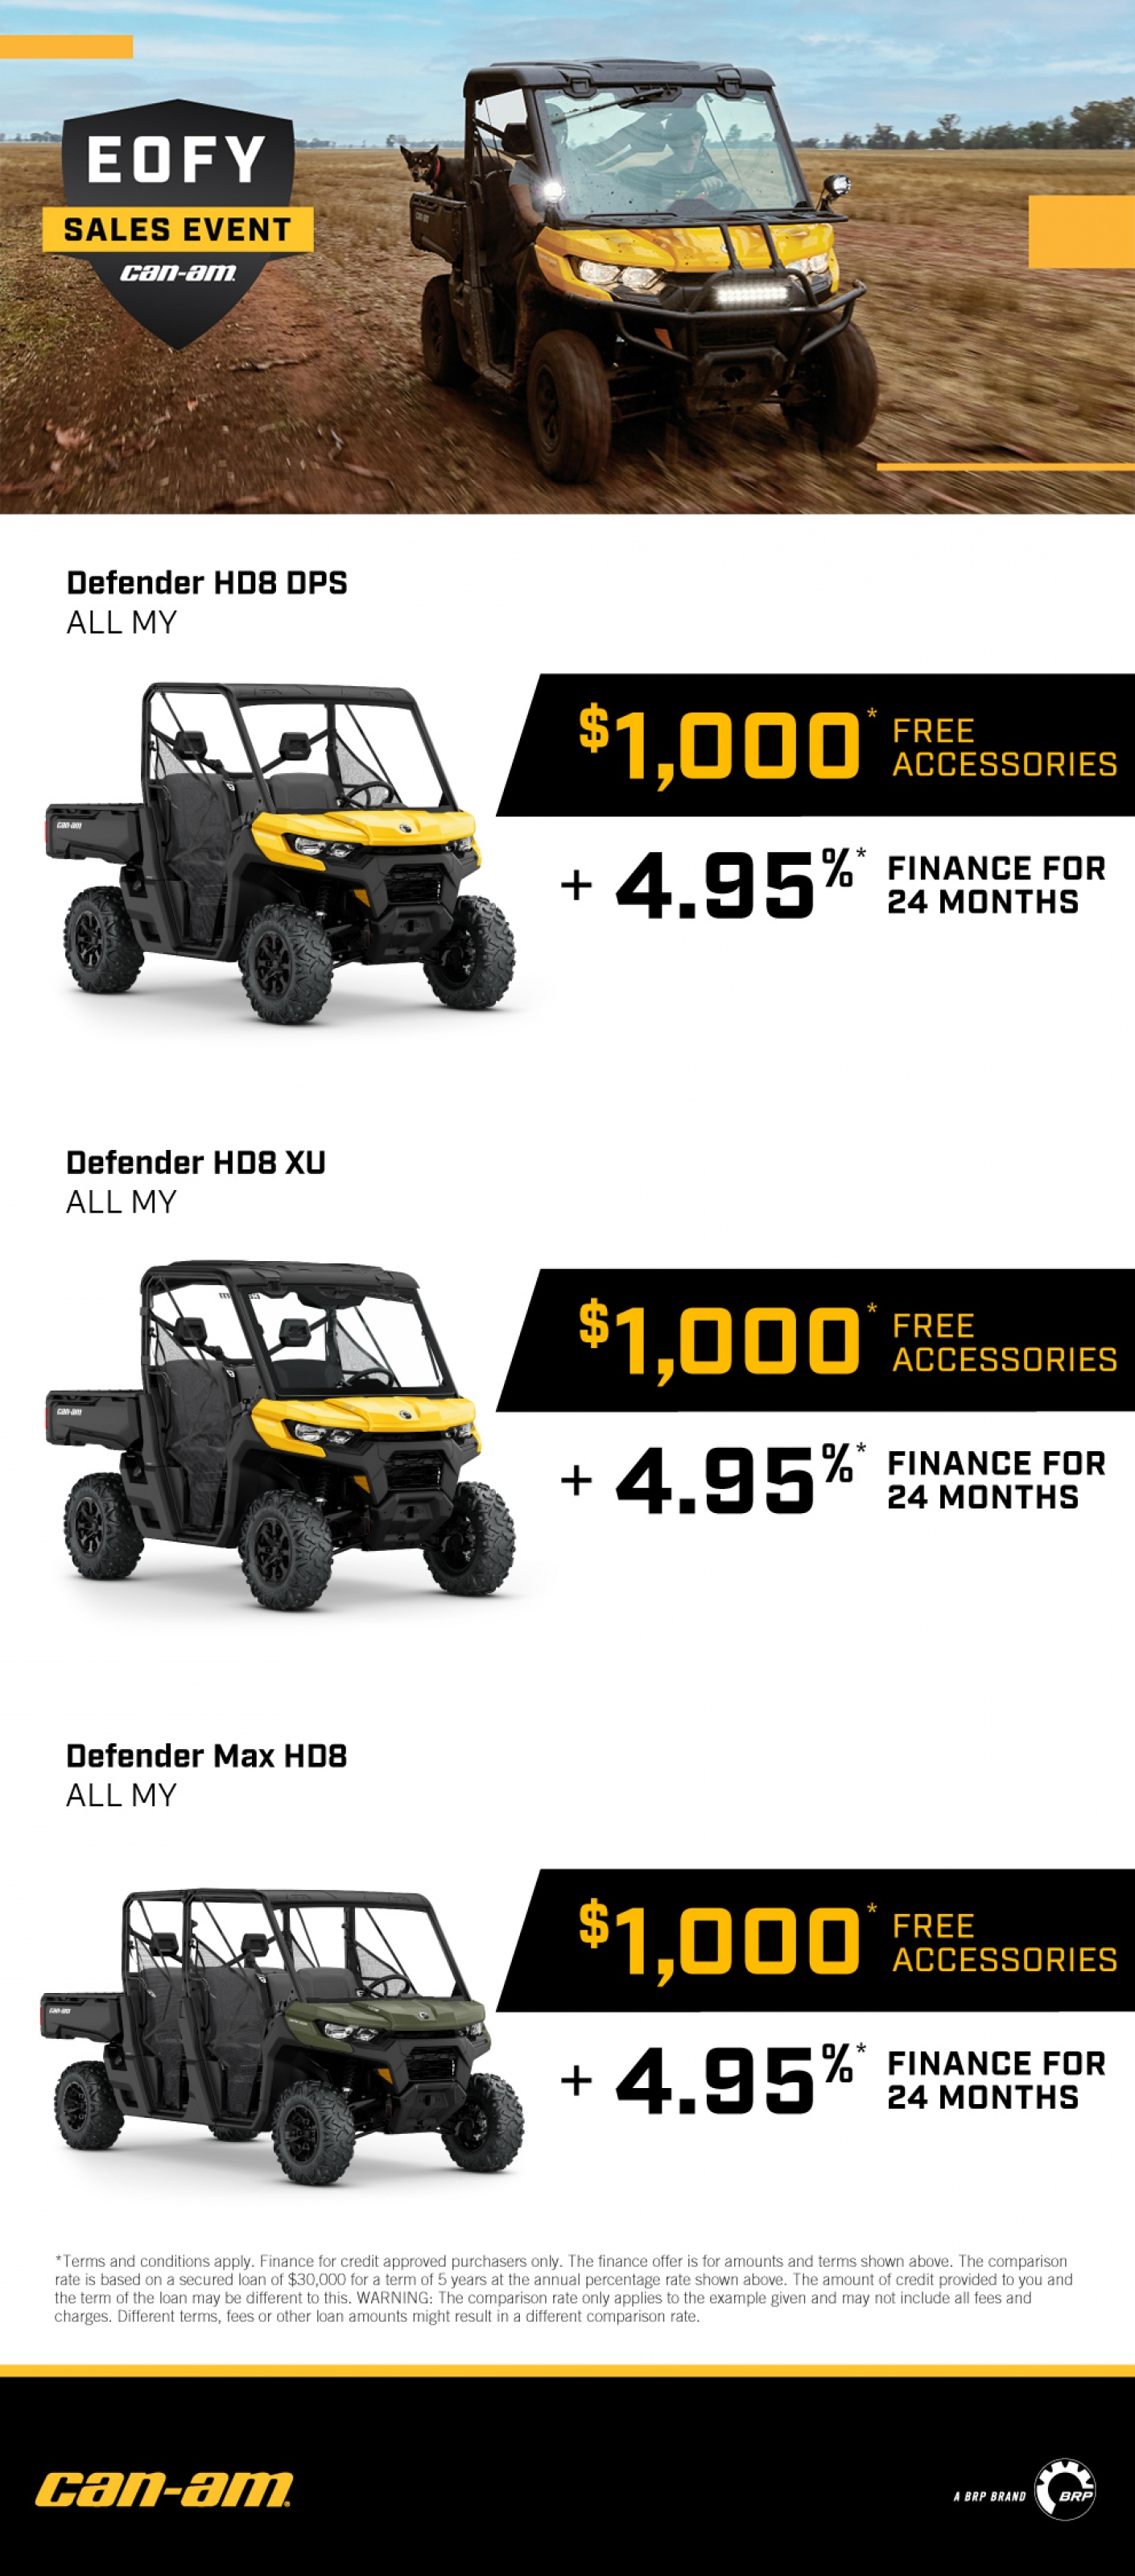 POWERSPORTS CANAM PROMOTIONS 2021 EOFY-MAY1-JULY 991